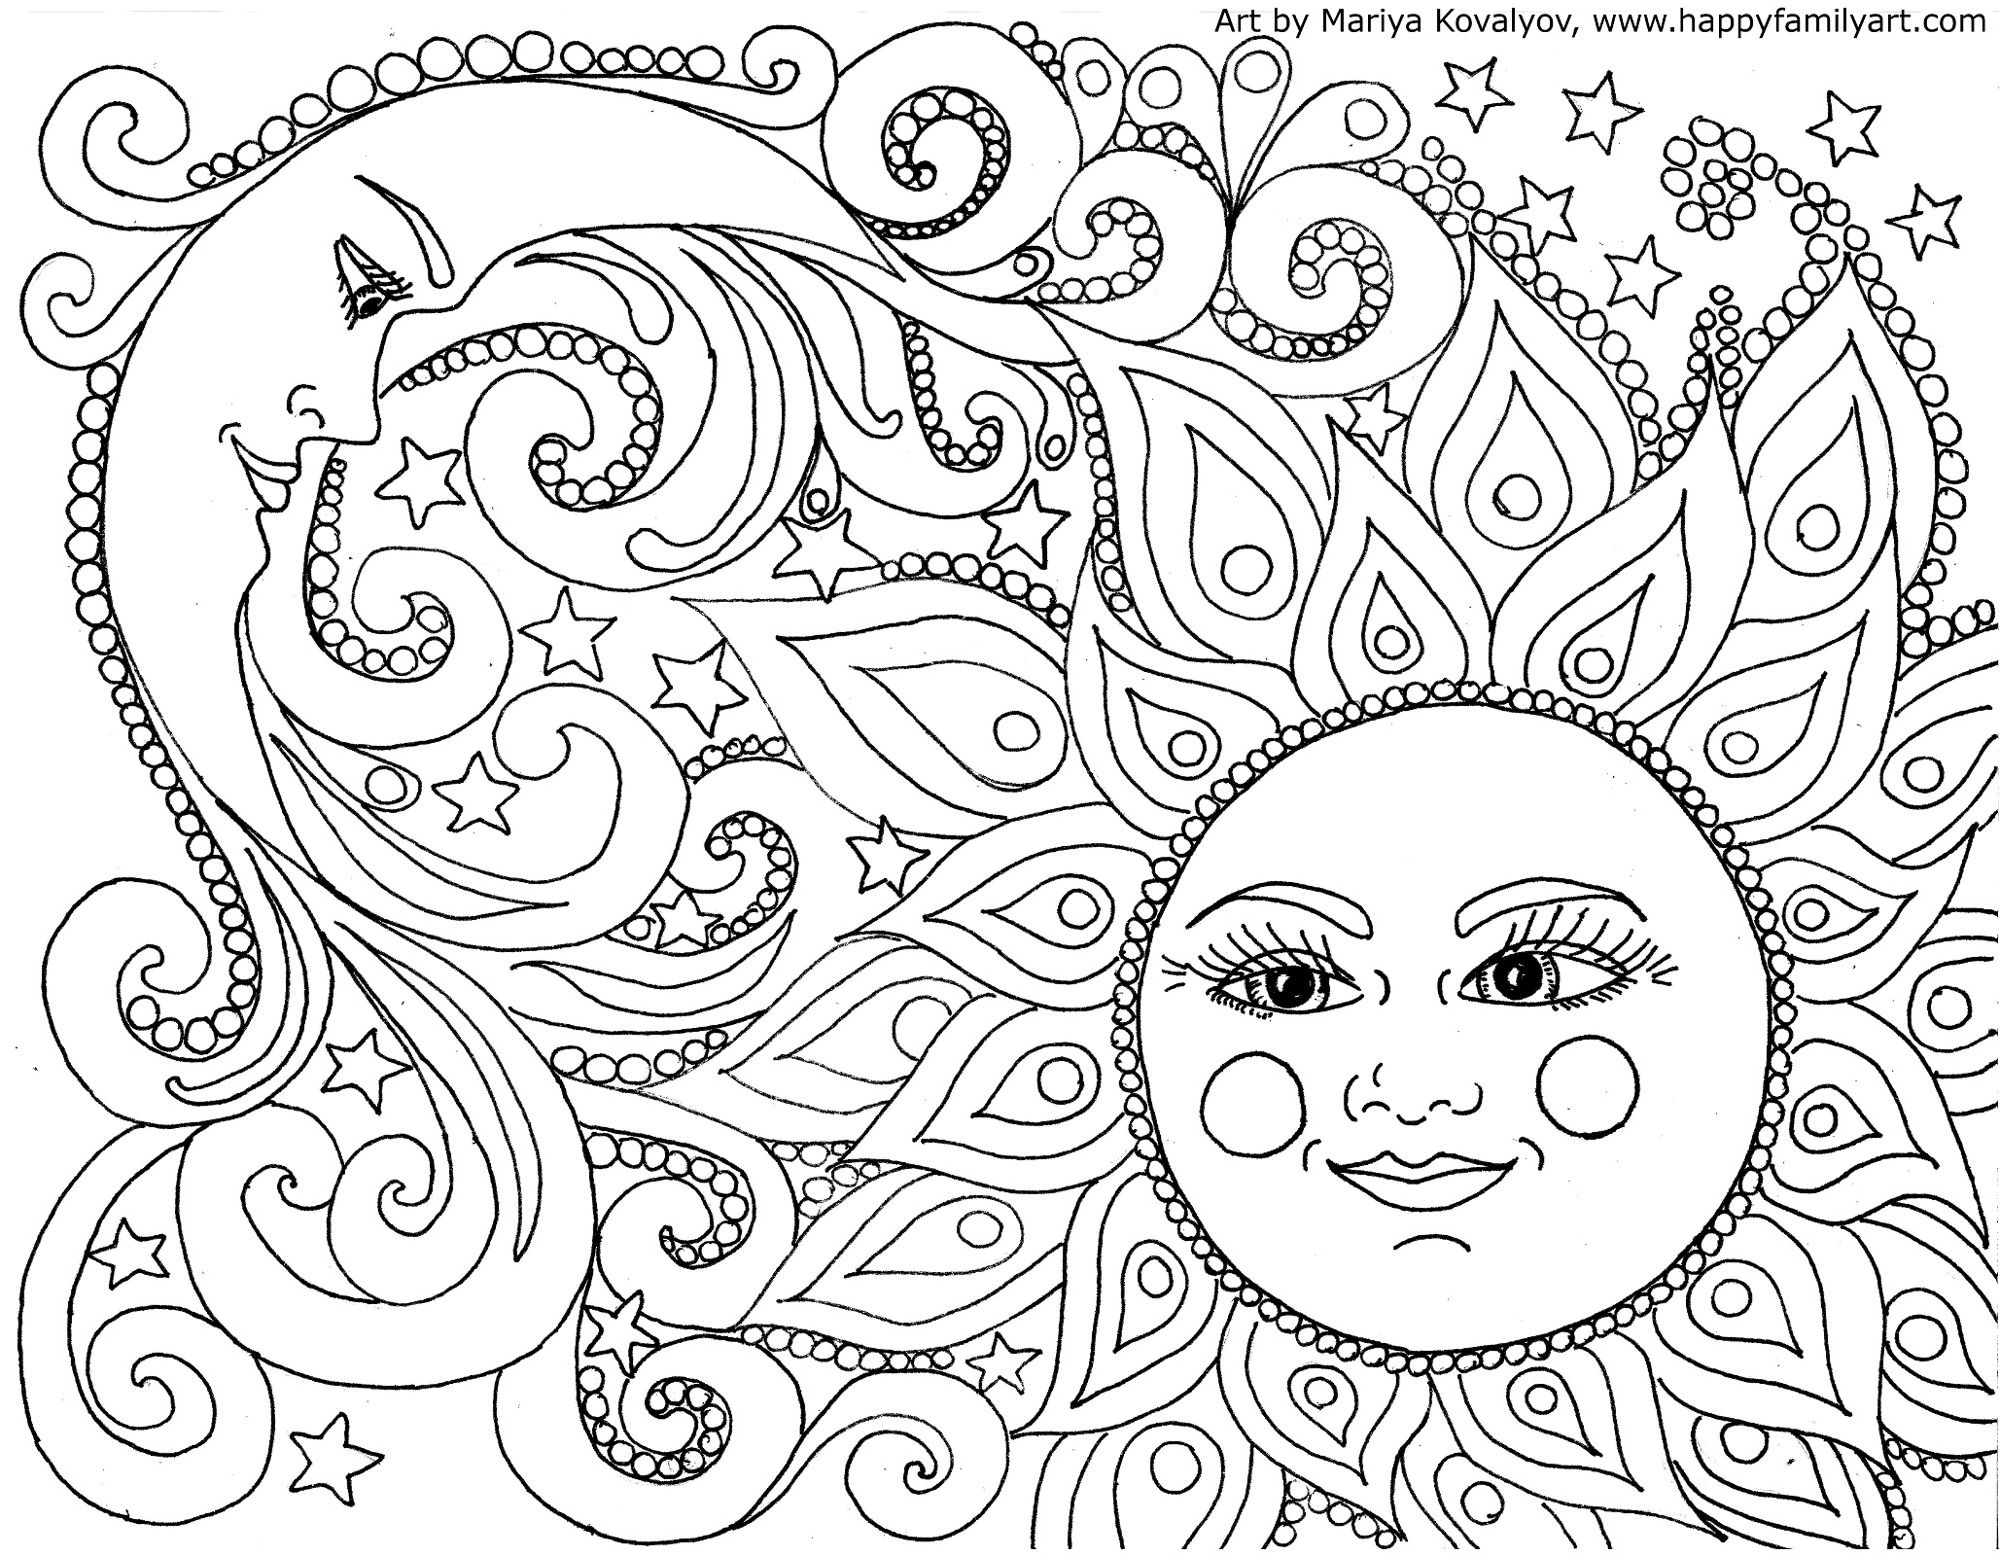 Co co coloring pages of a cowgirl - Fun And Original Coloring Pages A Good Pastime For Just Being Still Quiet Could Frame Hang The Finished Products Ps They Don T Have To Be